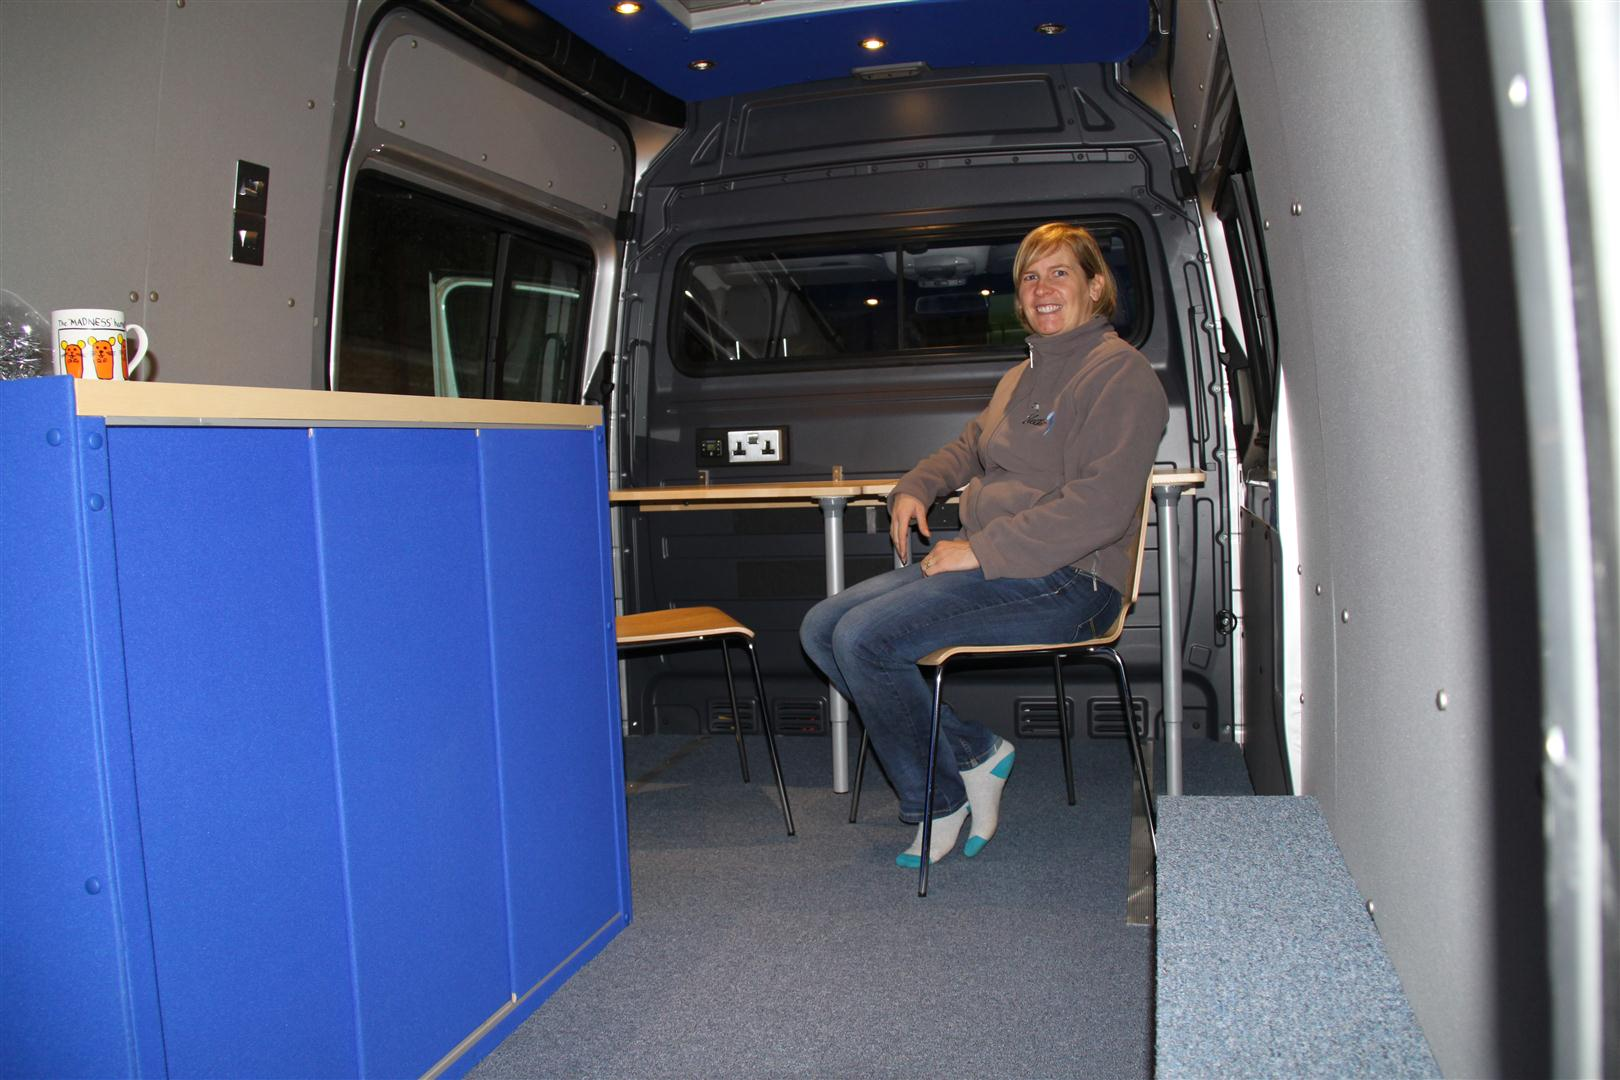 The Mobile Therapy Room